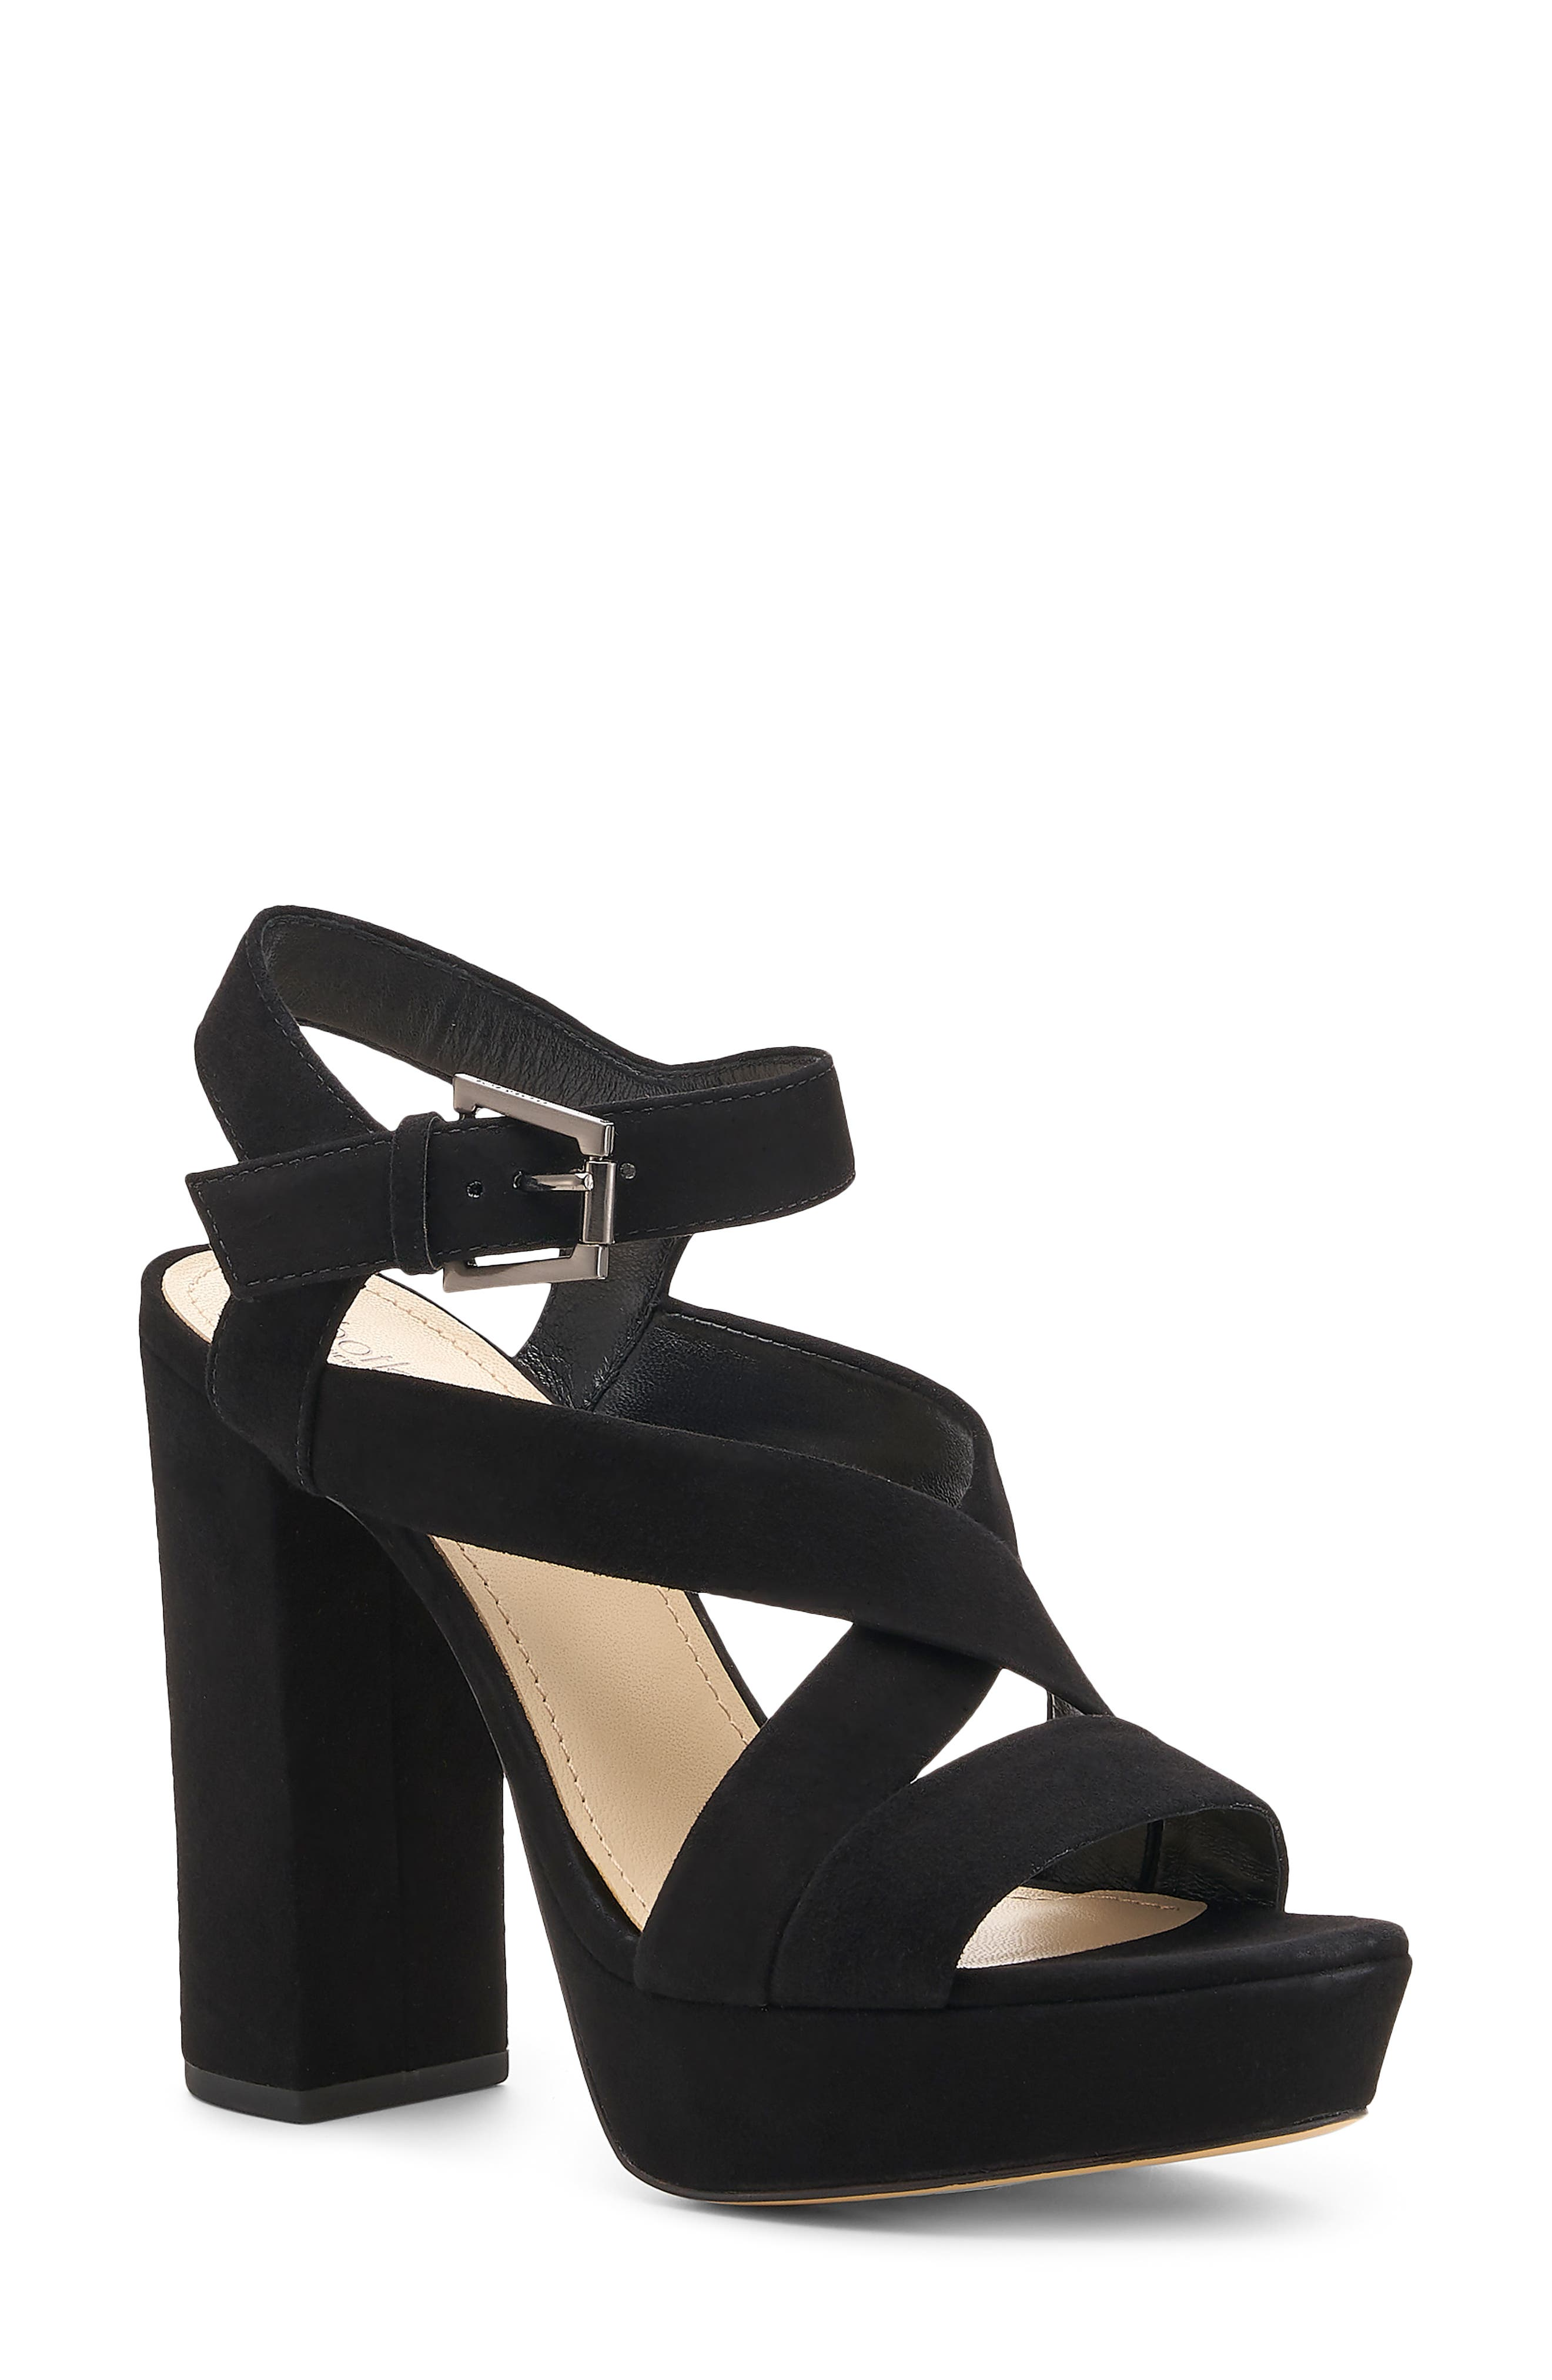 A towering block heel and platform boldly elevate a quarter-strap sandal that\\\'s ready to hit the dance floor. Style Name: Botkier Phoebe Platform Sandal (Women). Style Number: 6056522. Available in stores.